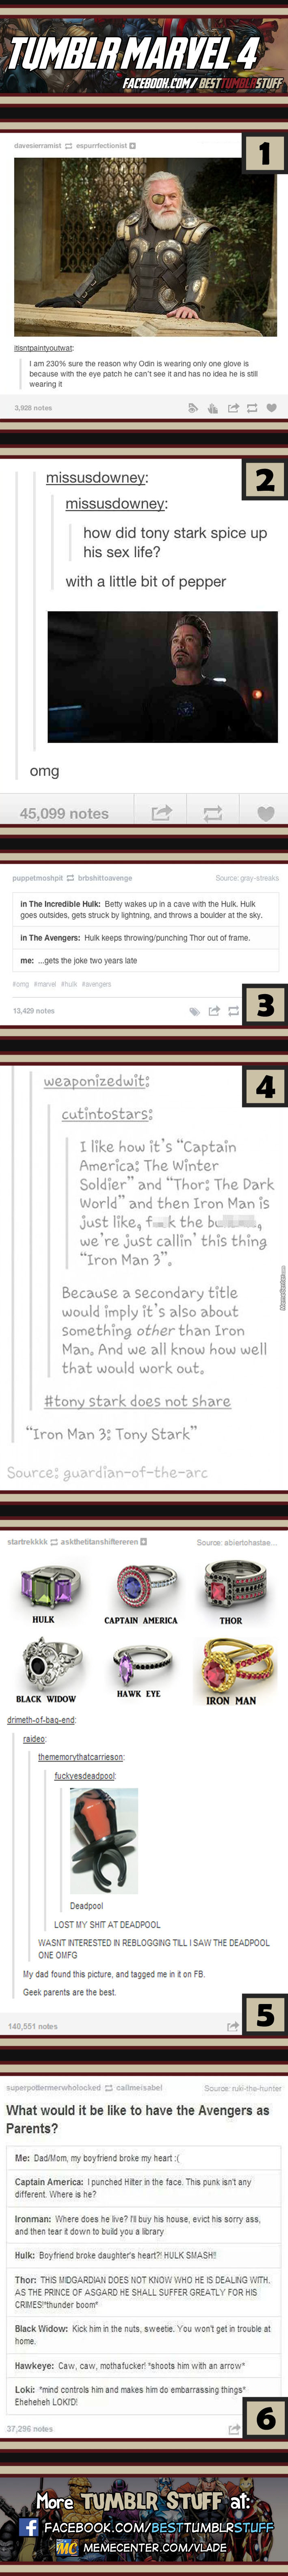 Tumblr Marvel #4